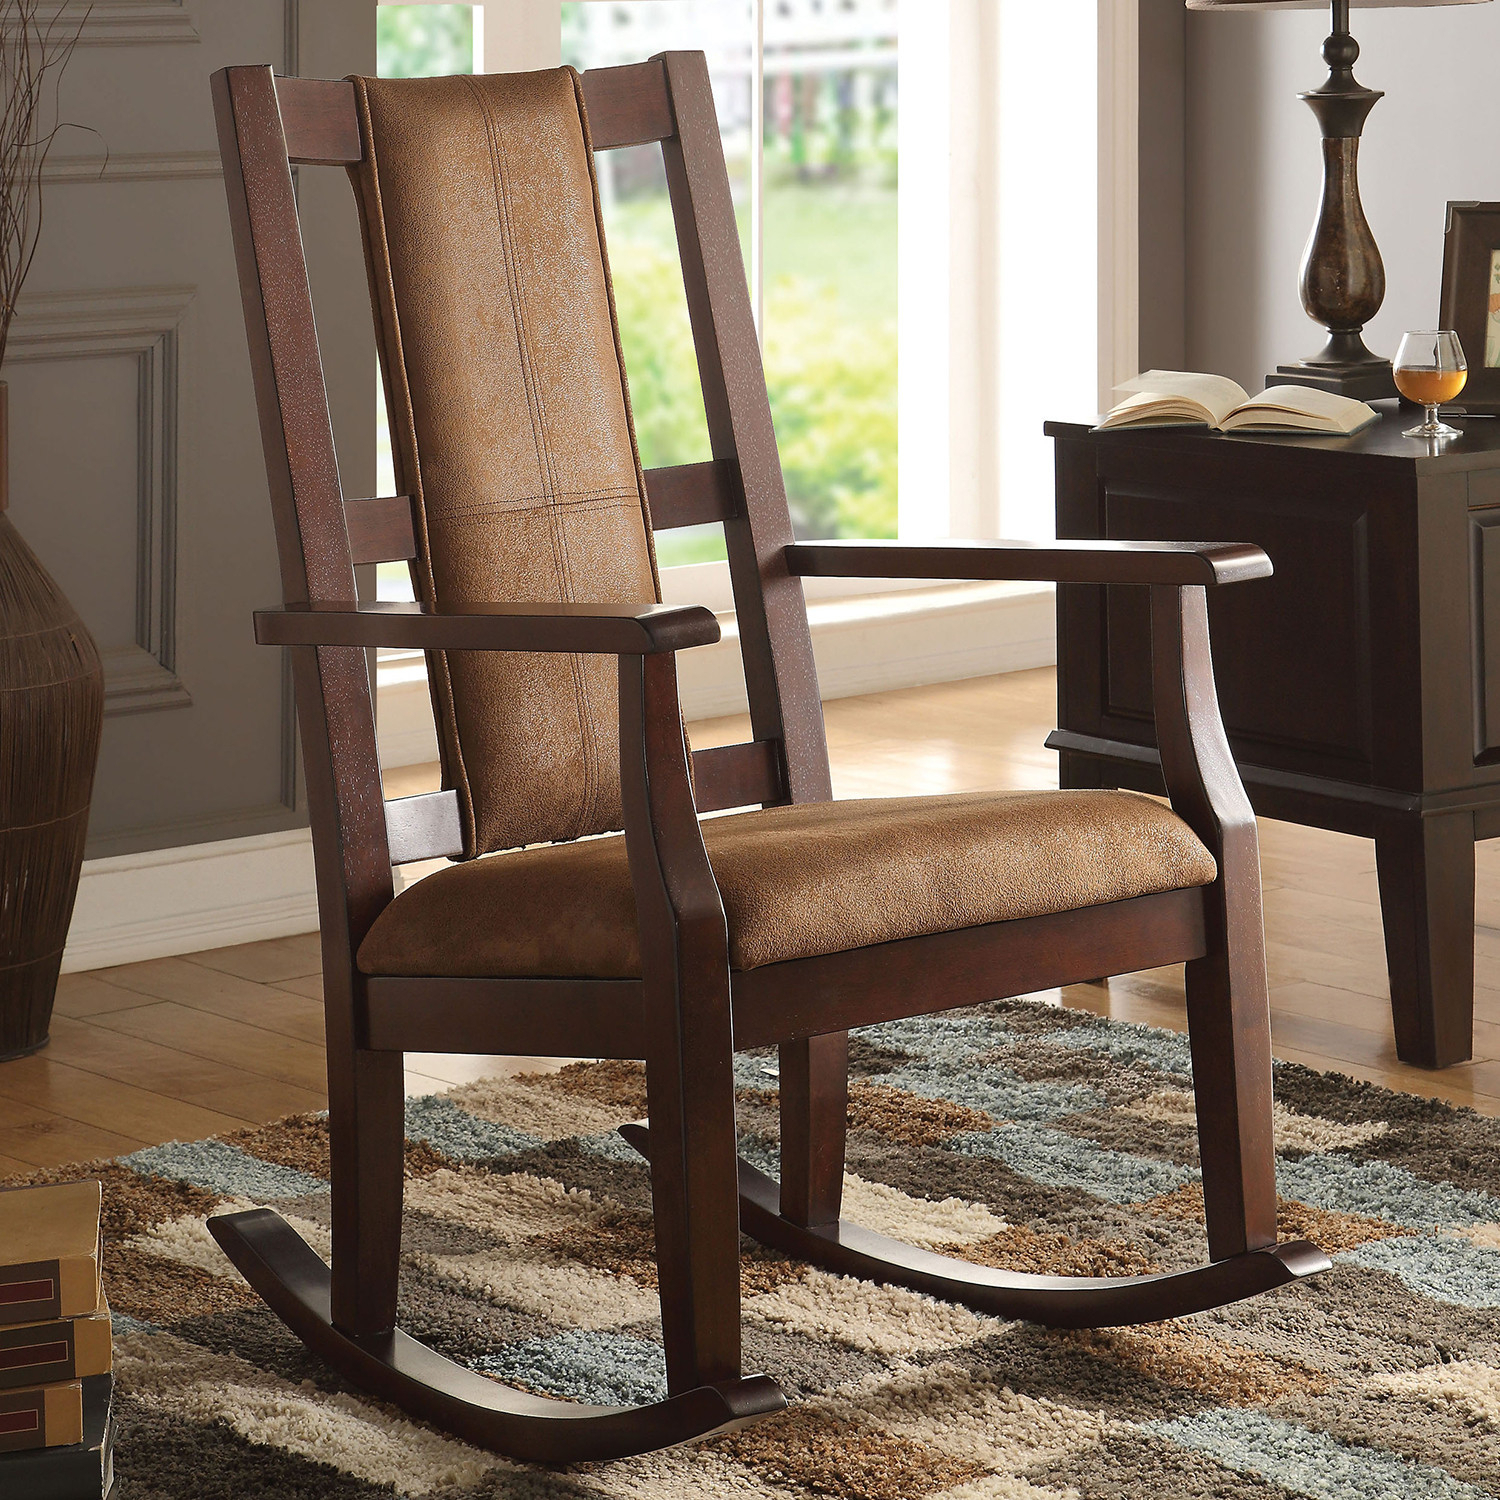 Butsea Rocking Chair In Brown Fabric & Espressoacme Pertaining To Espresso Brown Rocking Chairs (View 3 of 20)